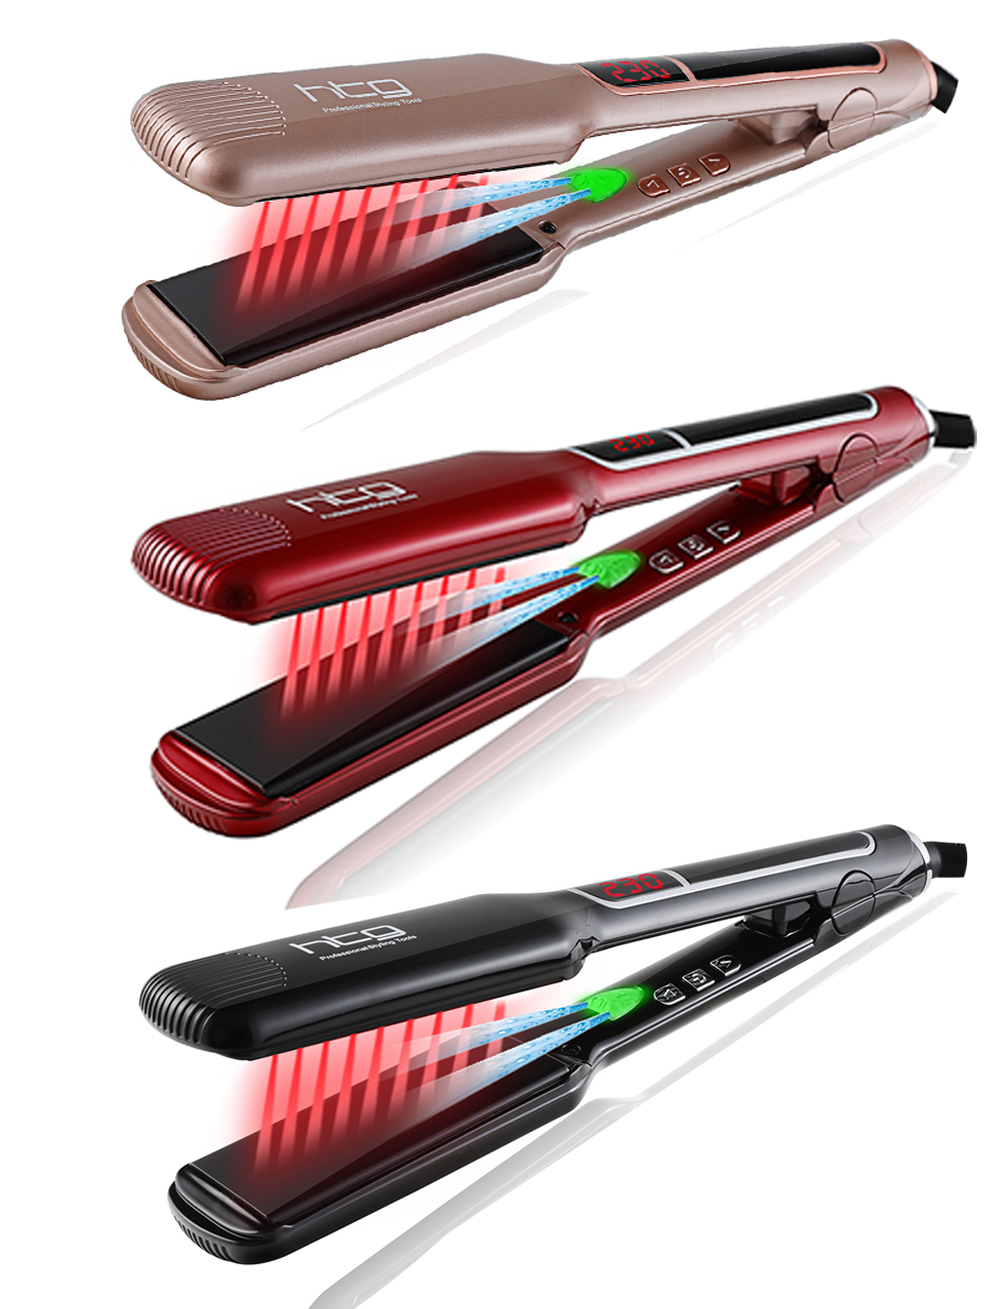 HTG Professional Hair straightener iron Flat Negative ion ionic Hair Straightening +lcd infrared Technology HT087L Wide plates фен elchim 3900 healthy ionic red 03073 07